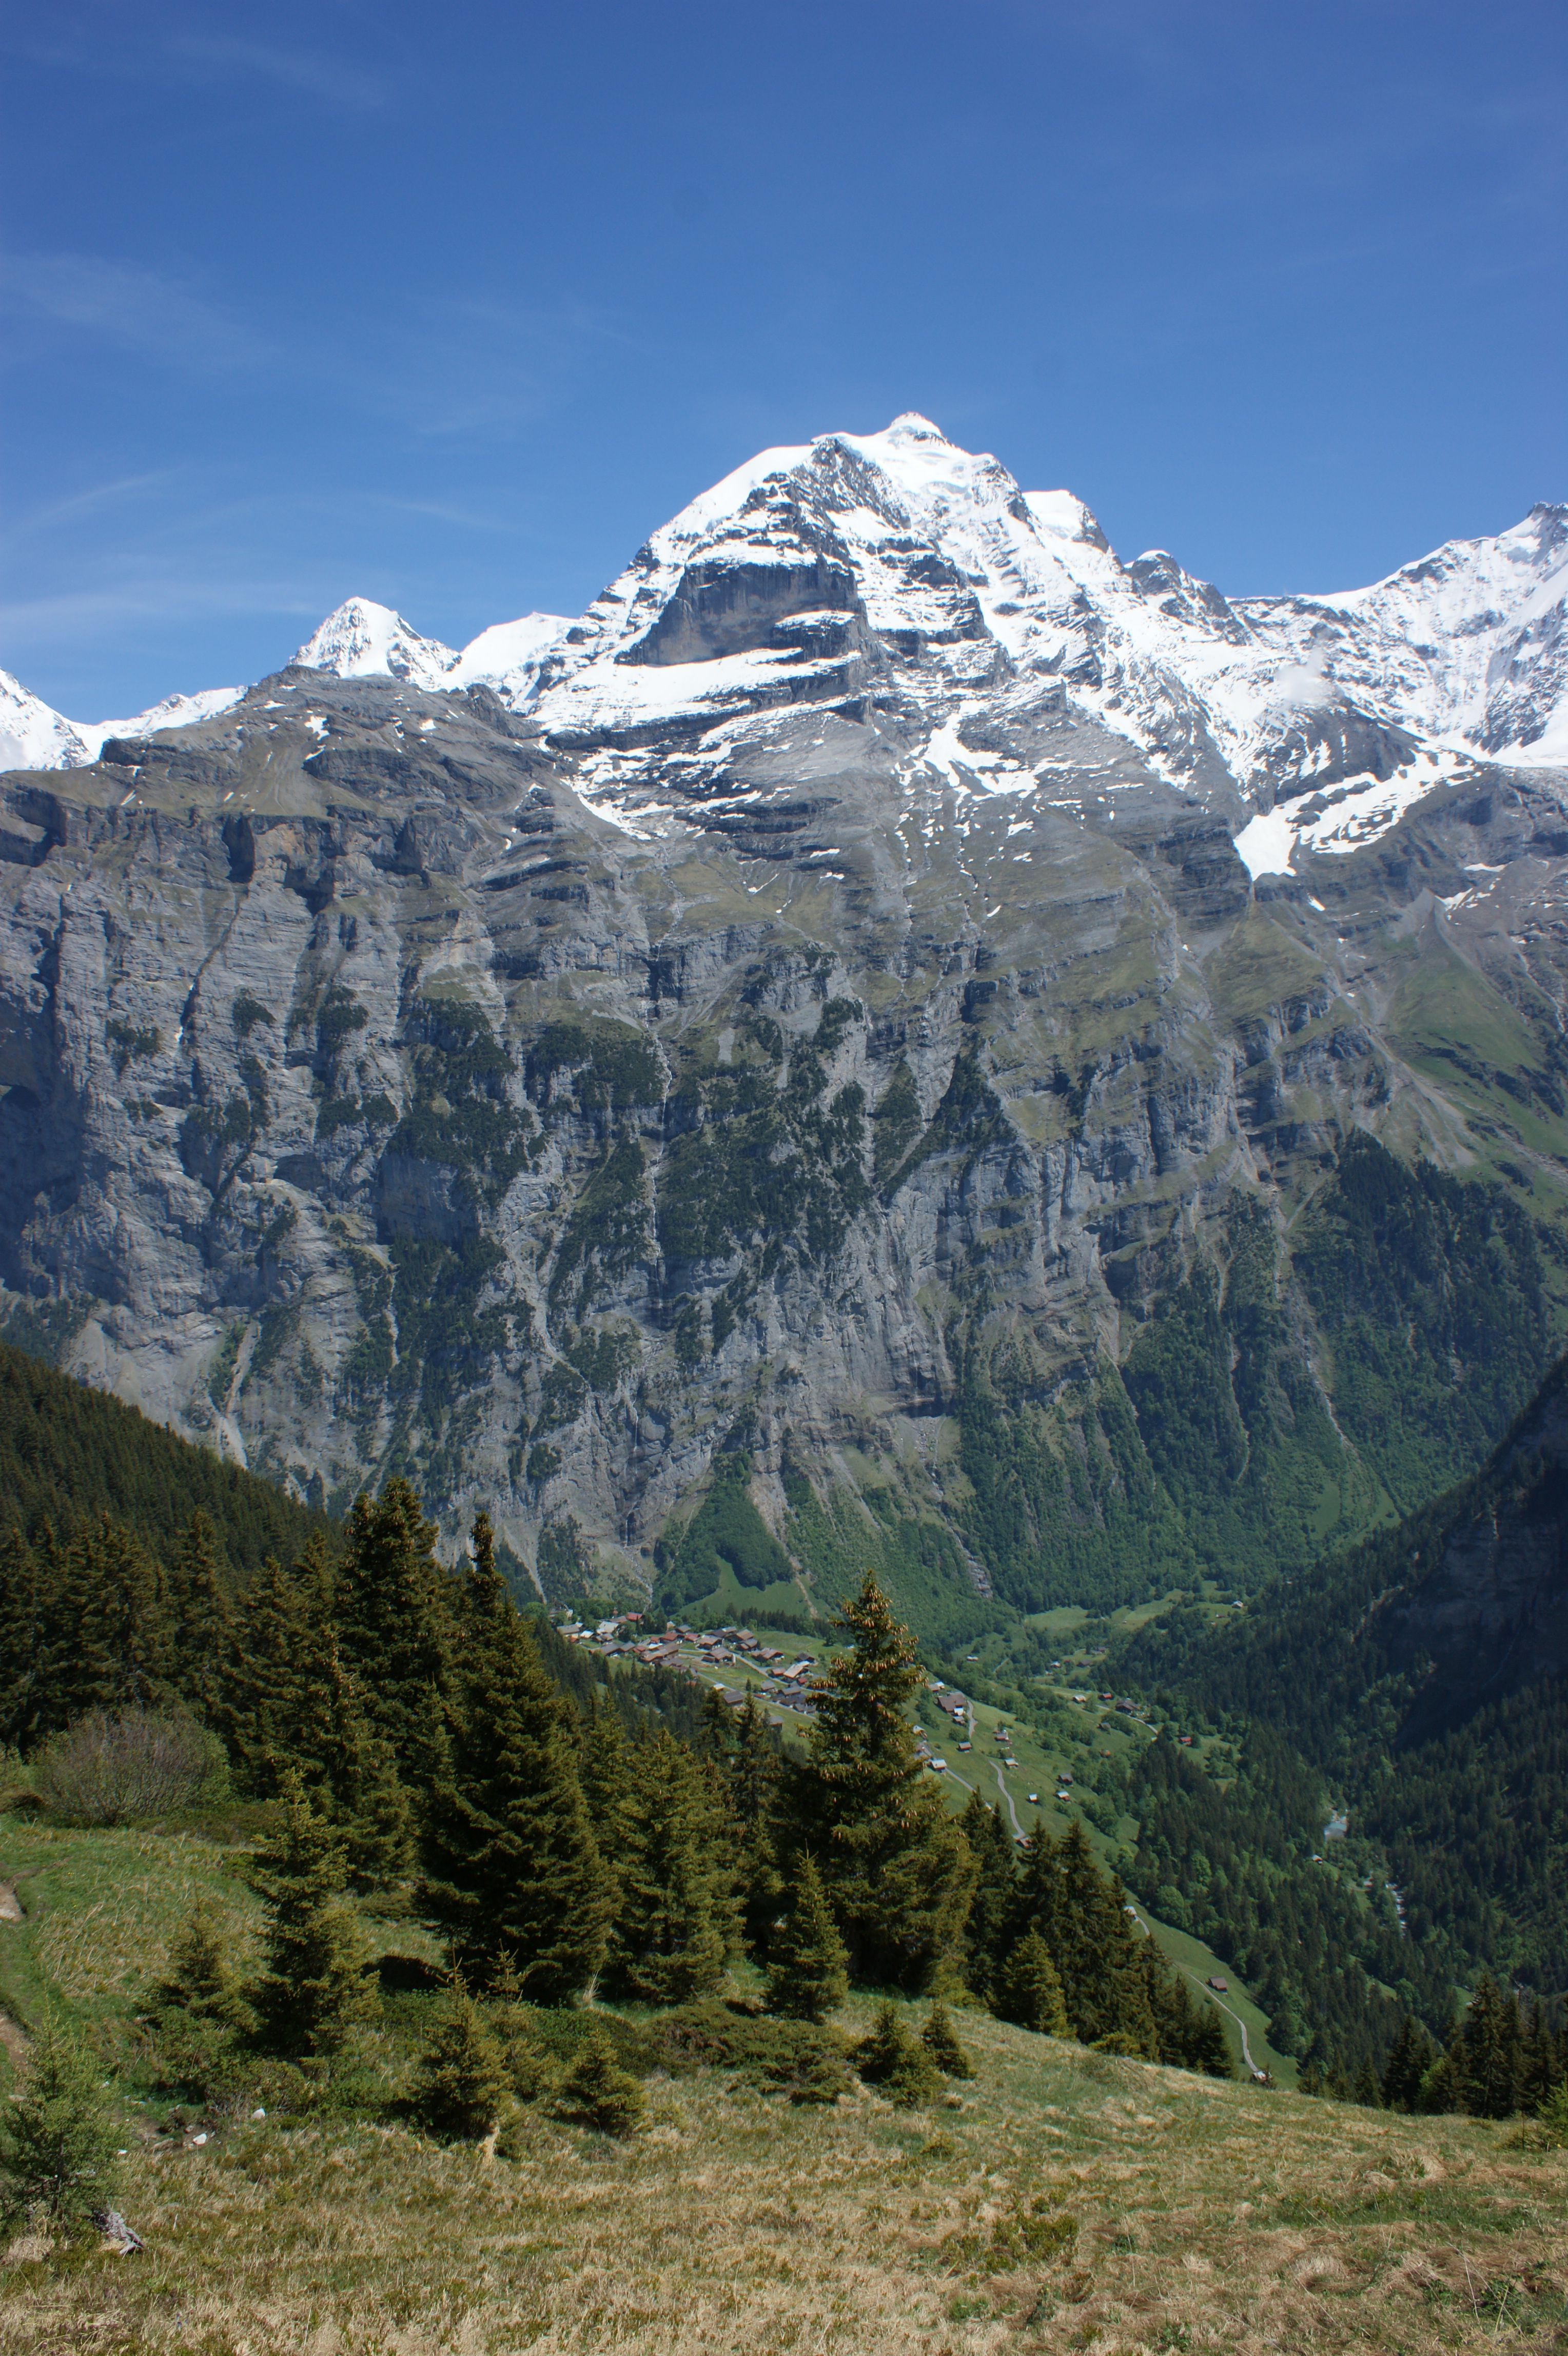 Lauterbrunnen, Switzerland | UFOREA.org | The trip you want. The help they need.